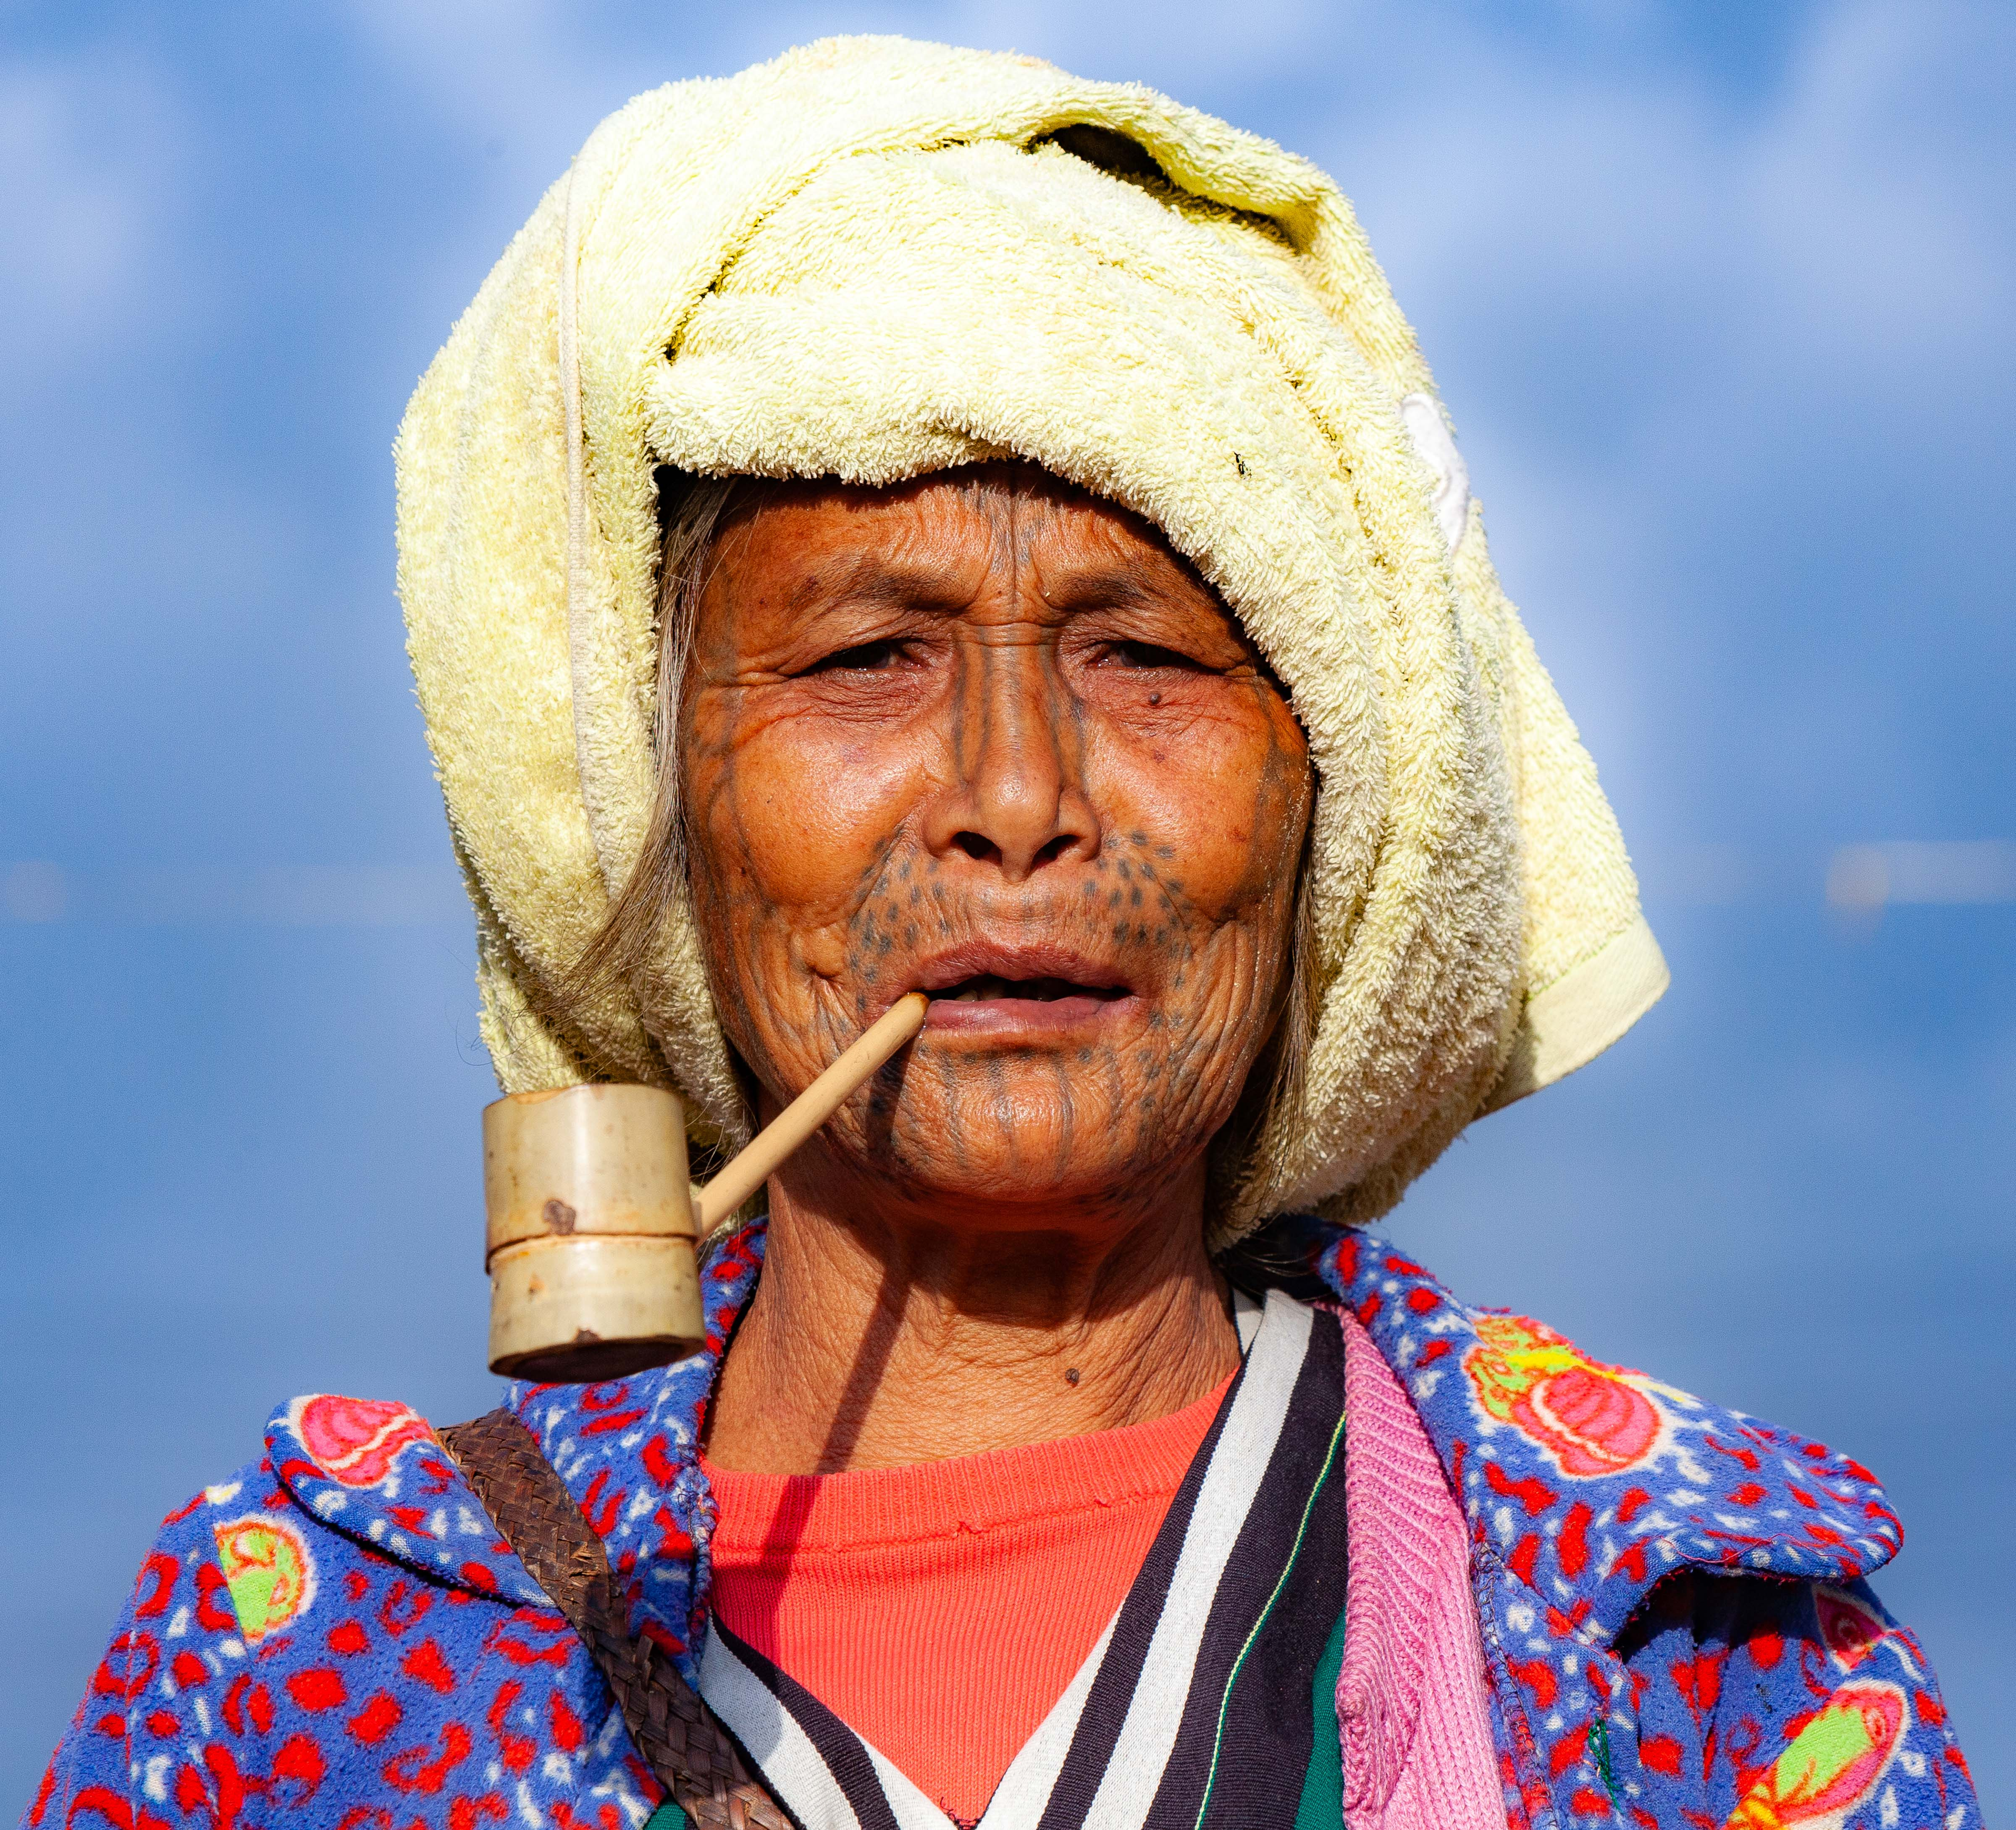 Myanmar, Chin Prov, Tattoo-Faced Woman With Pipe, 2012, IMG 2584